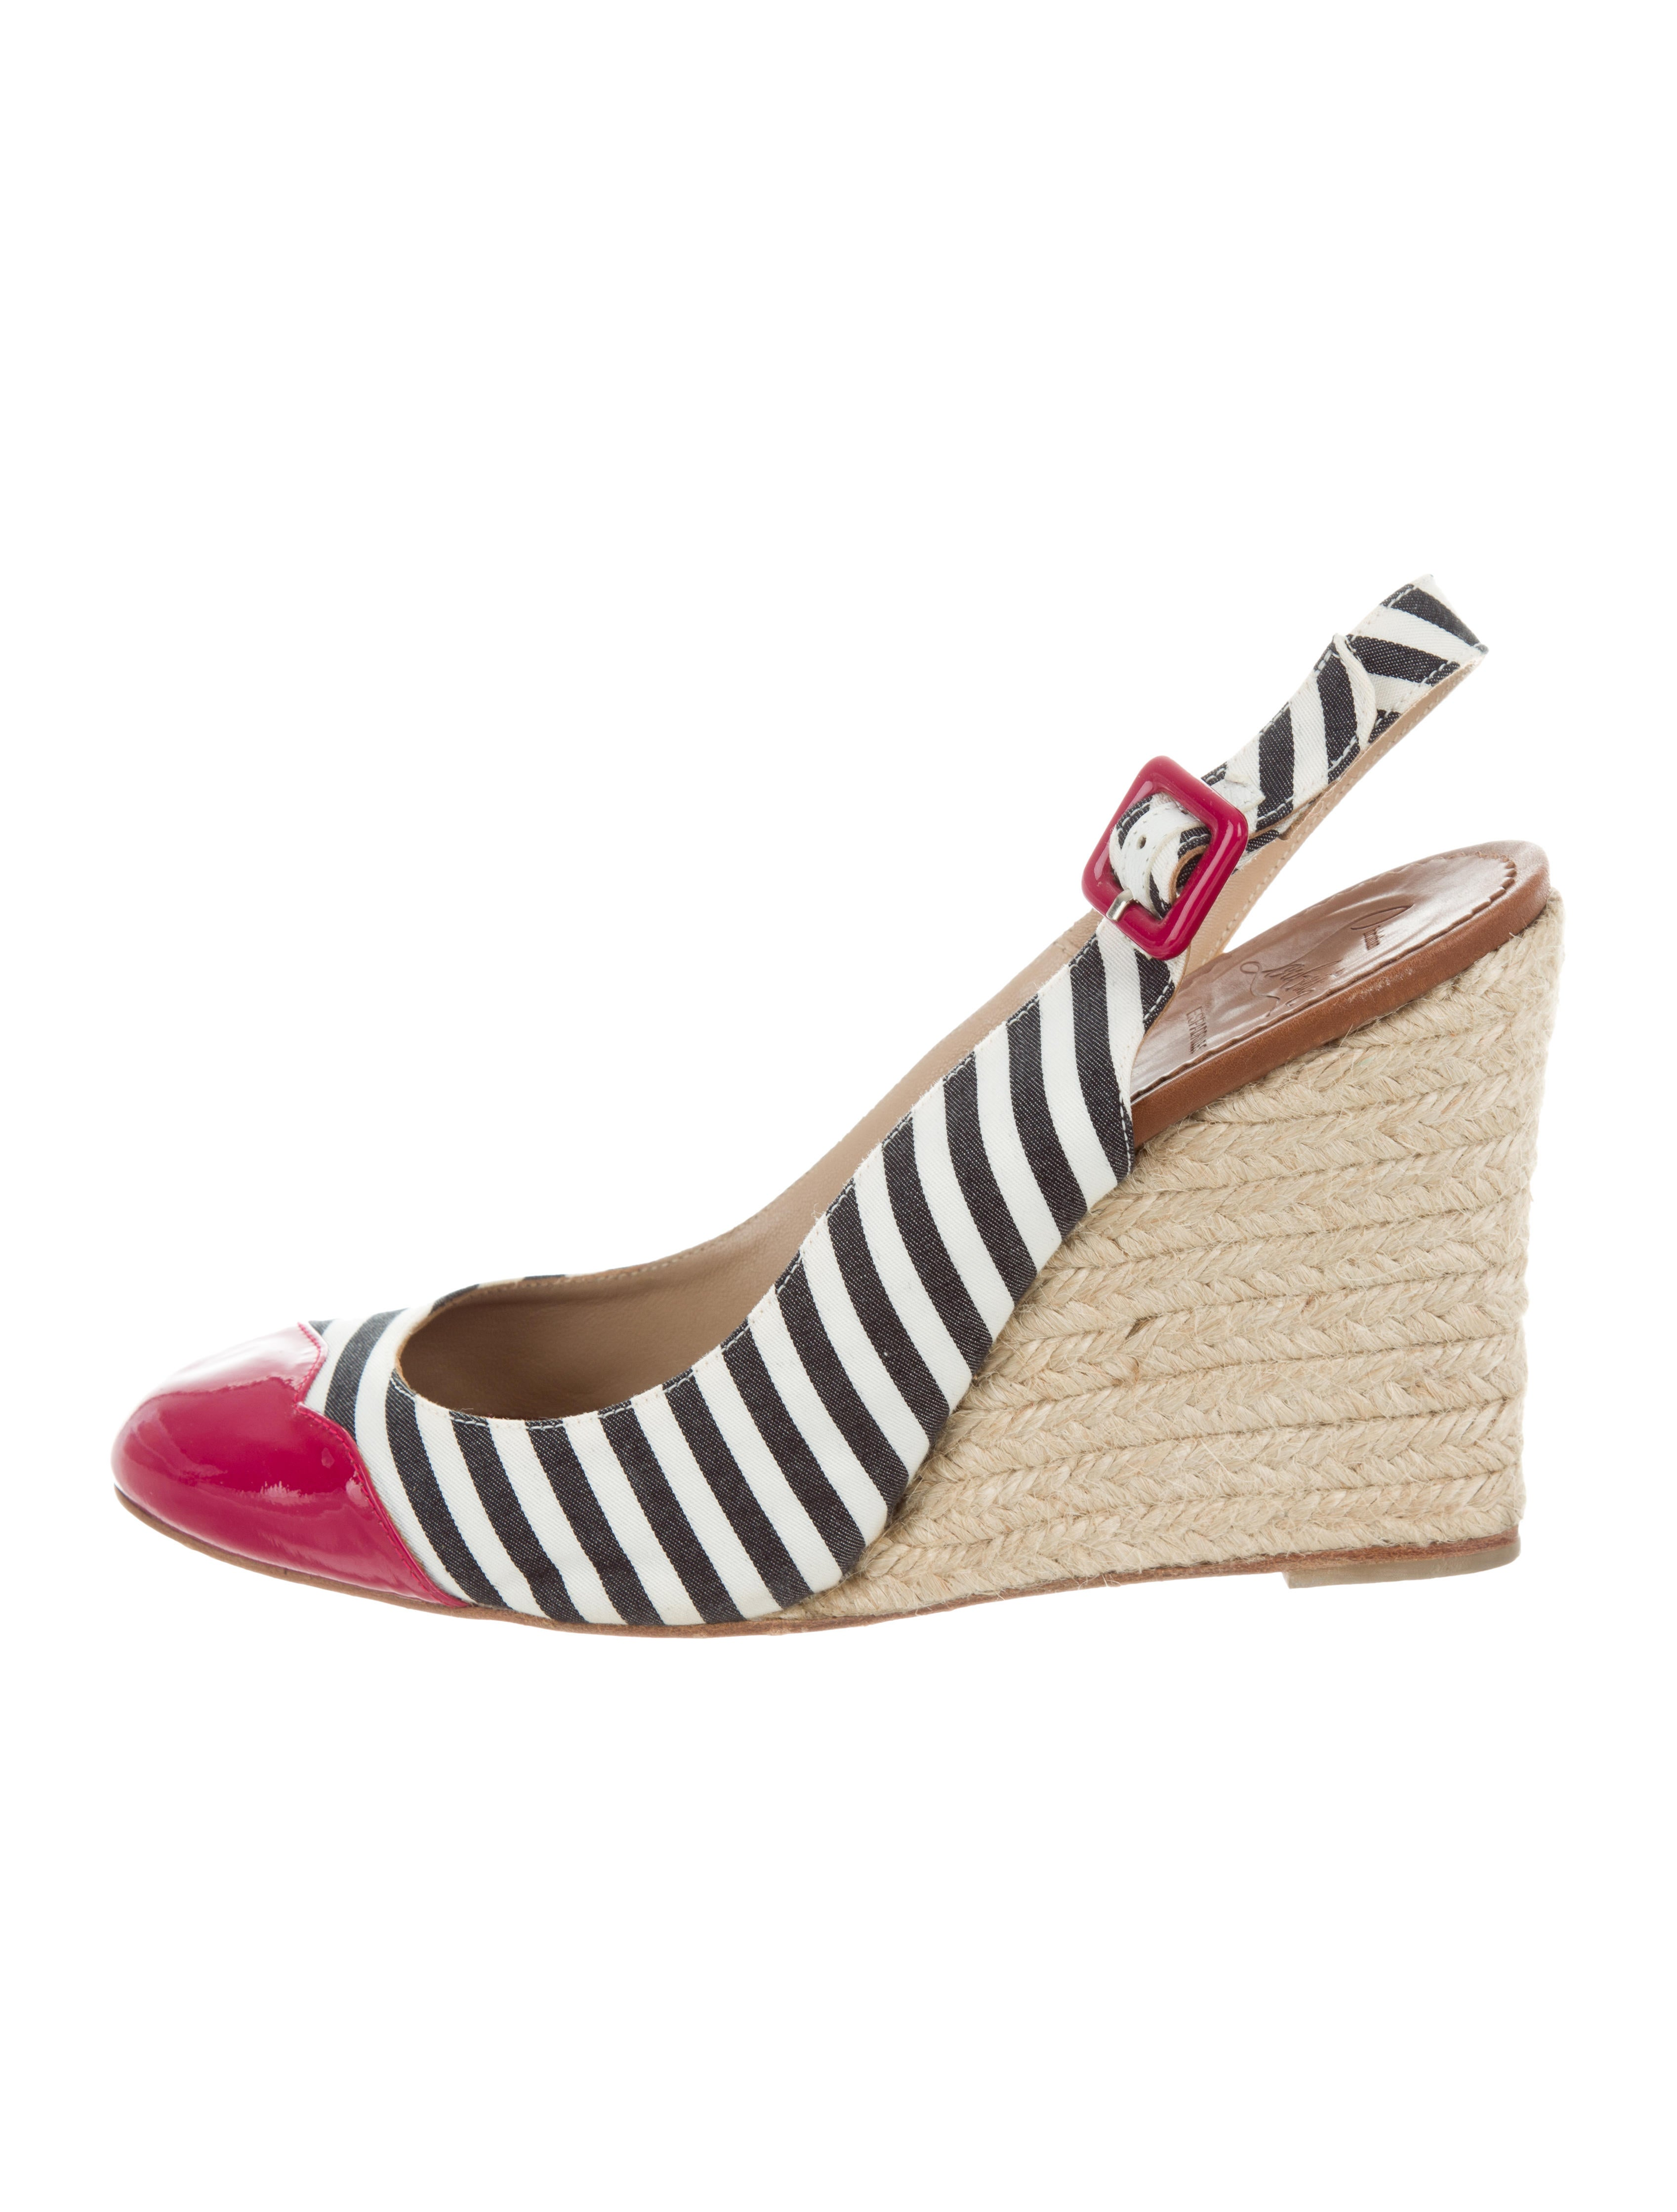 for nice cheap price cheap sale 2014 unisex Christian Louboutin Striped Slingback Wedges newest for sale latest collections sale online LJEQmdW